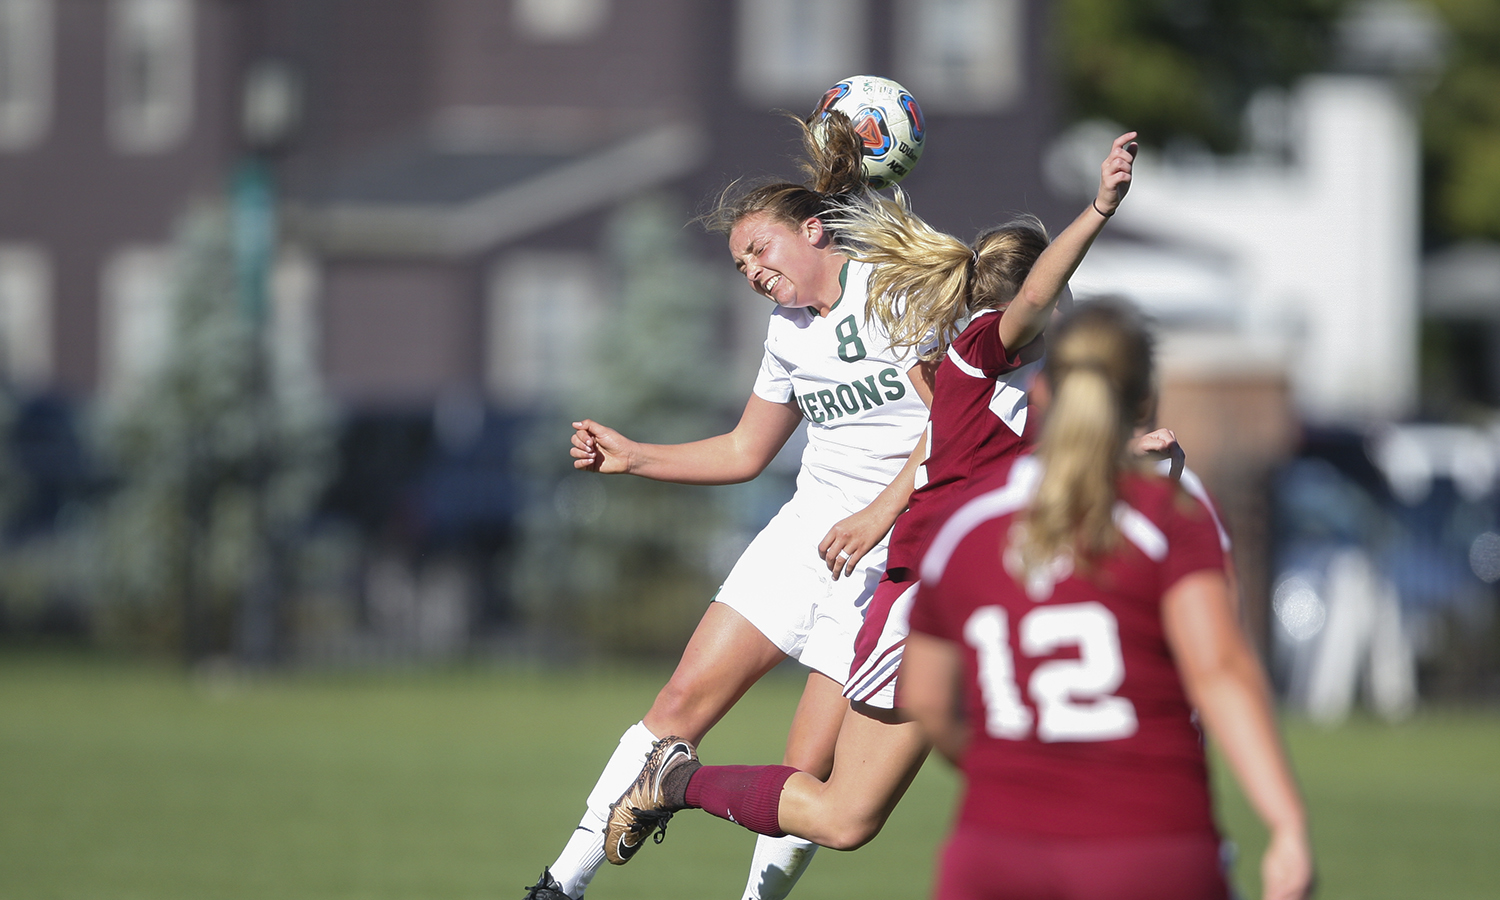 Elizabeth Moore 'X goes head to head with a Vassar defender during the Heron's 4-0  Liberty League victory at home on Saturday.